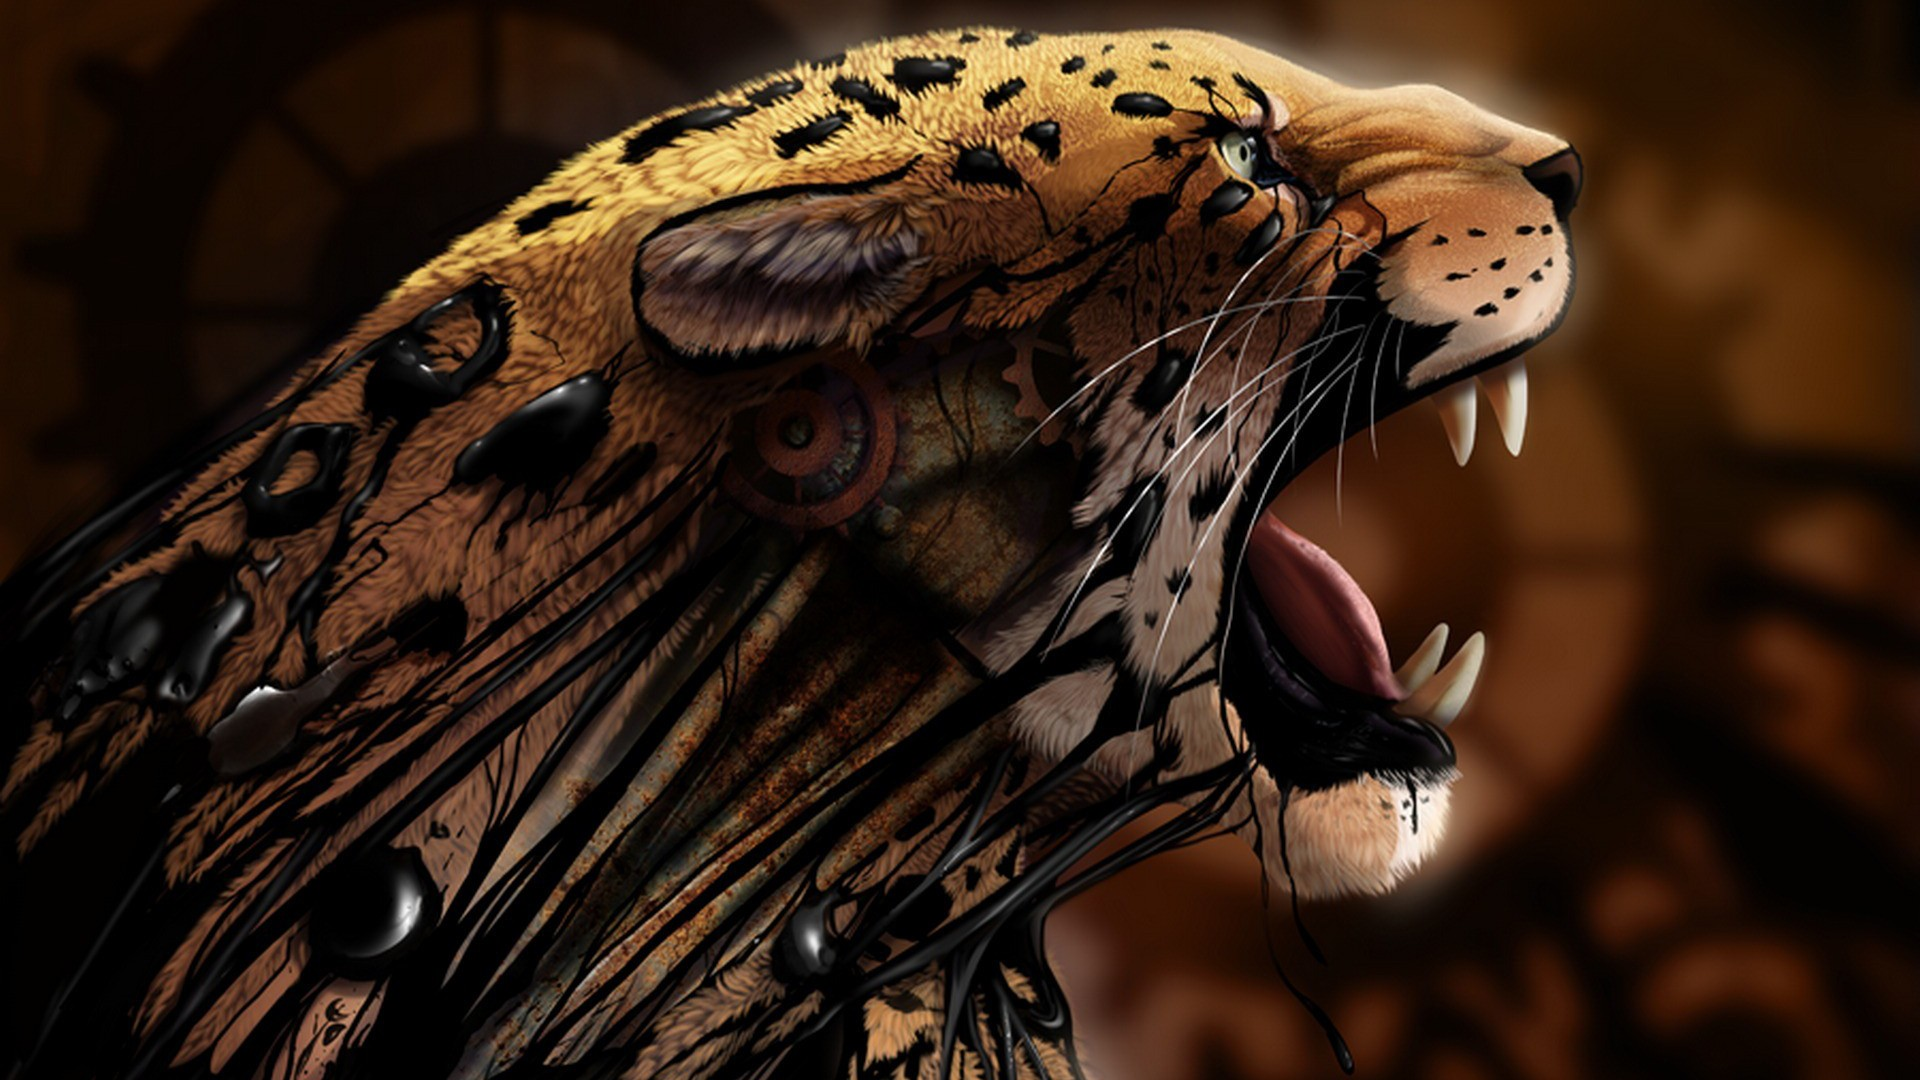 Tiger digital art wallpaper high definition high quality widescreen tiger digital art altavistaventures Choice Image